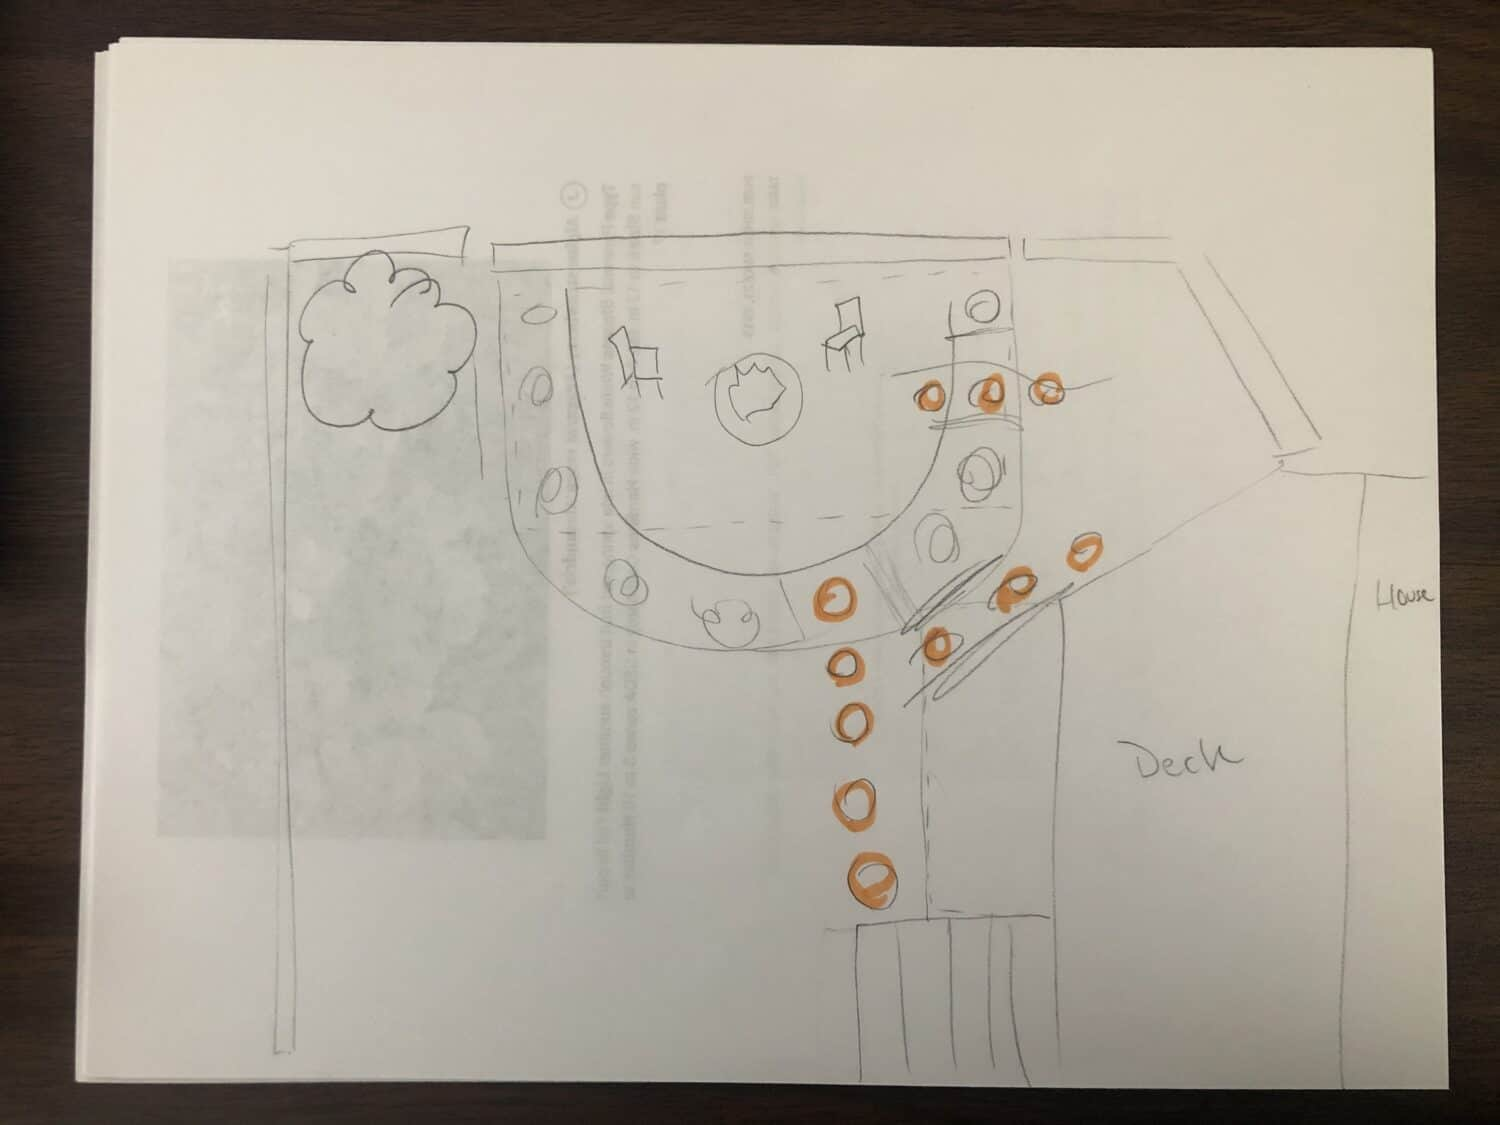 Backyard Fire Pit Rough Plan Sketch